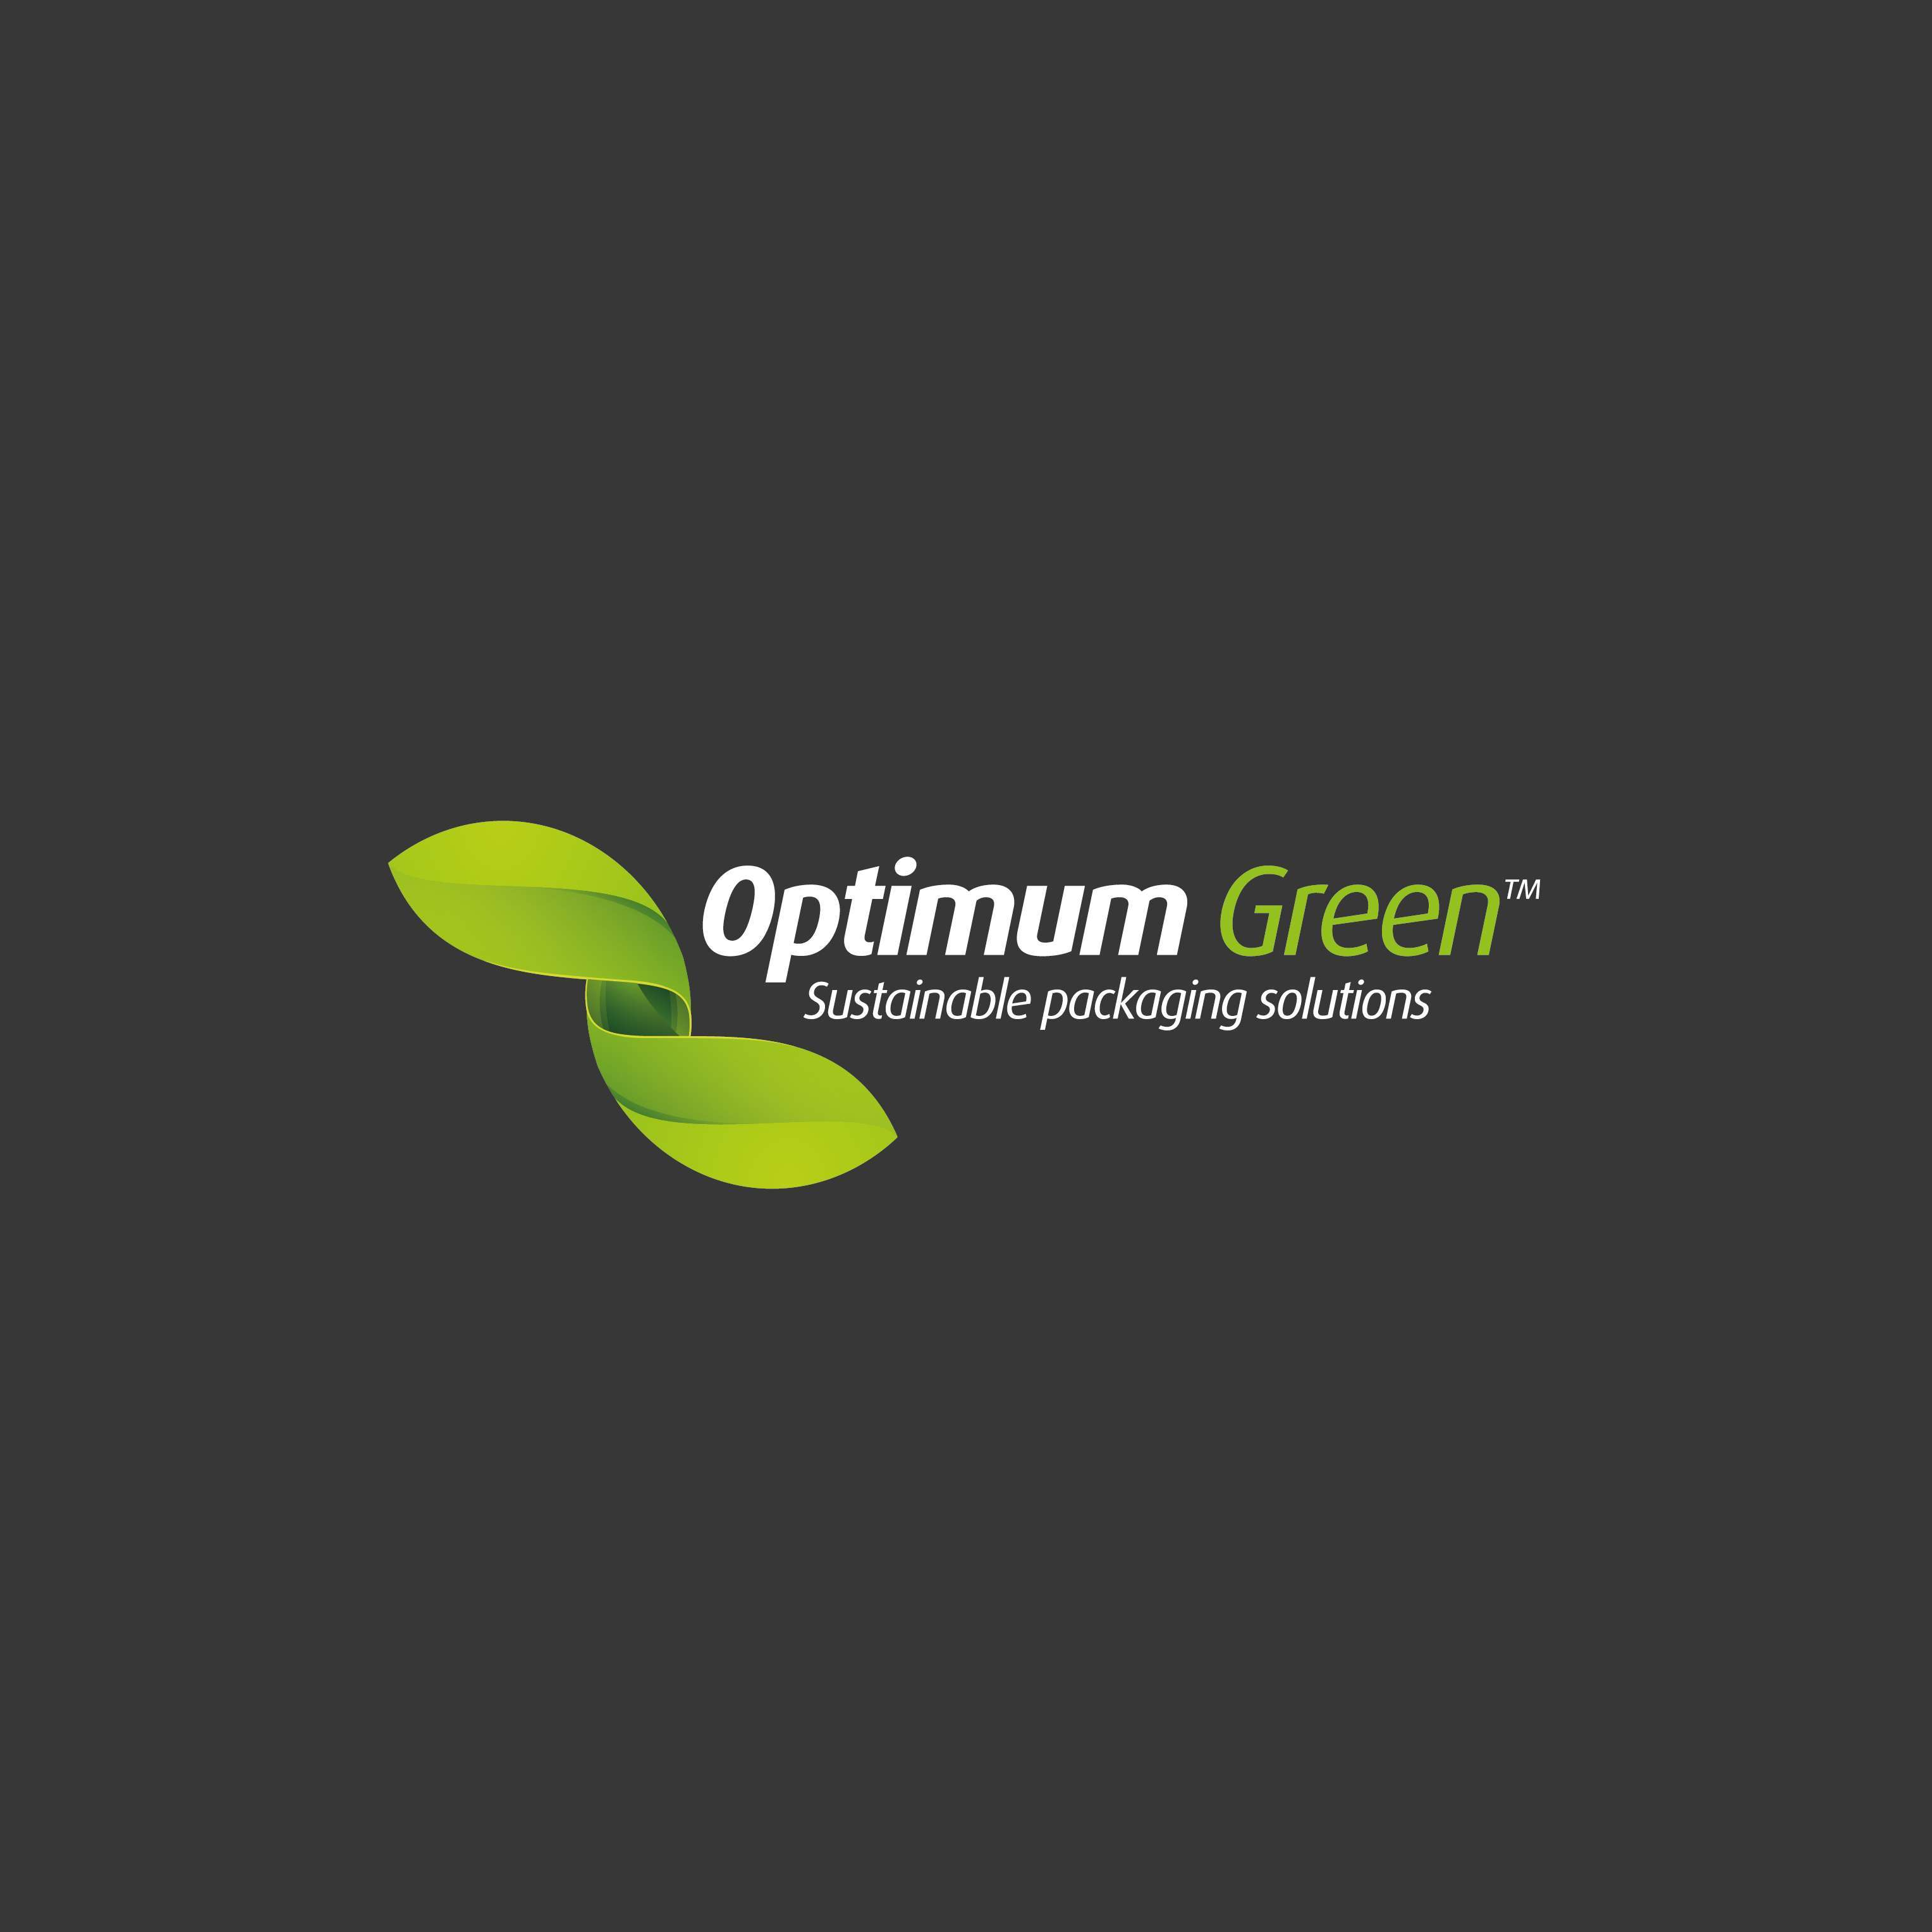 Optimum Green